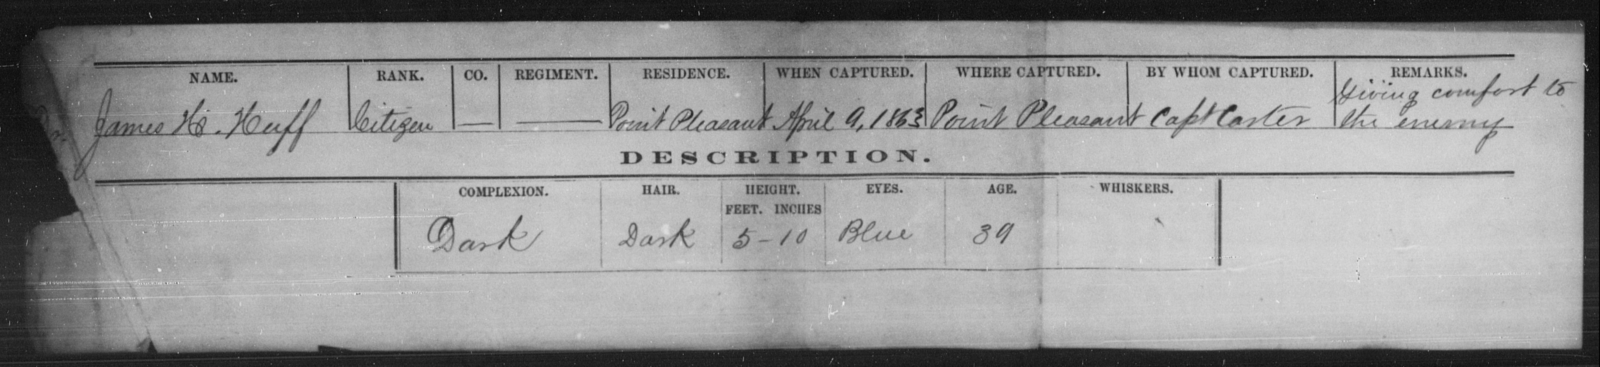 Huff, James H - State: [Blank] - Year: 1863